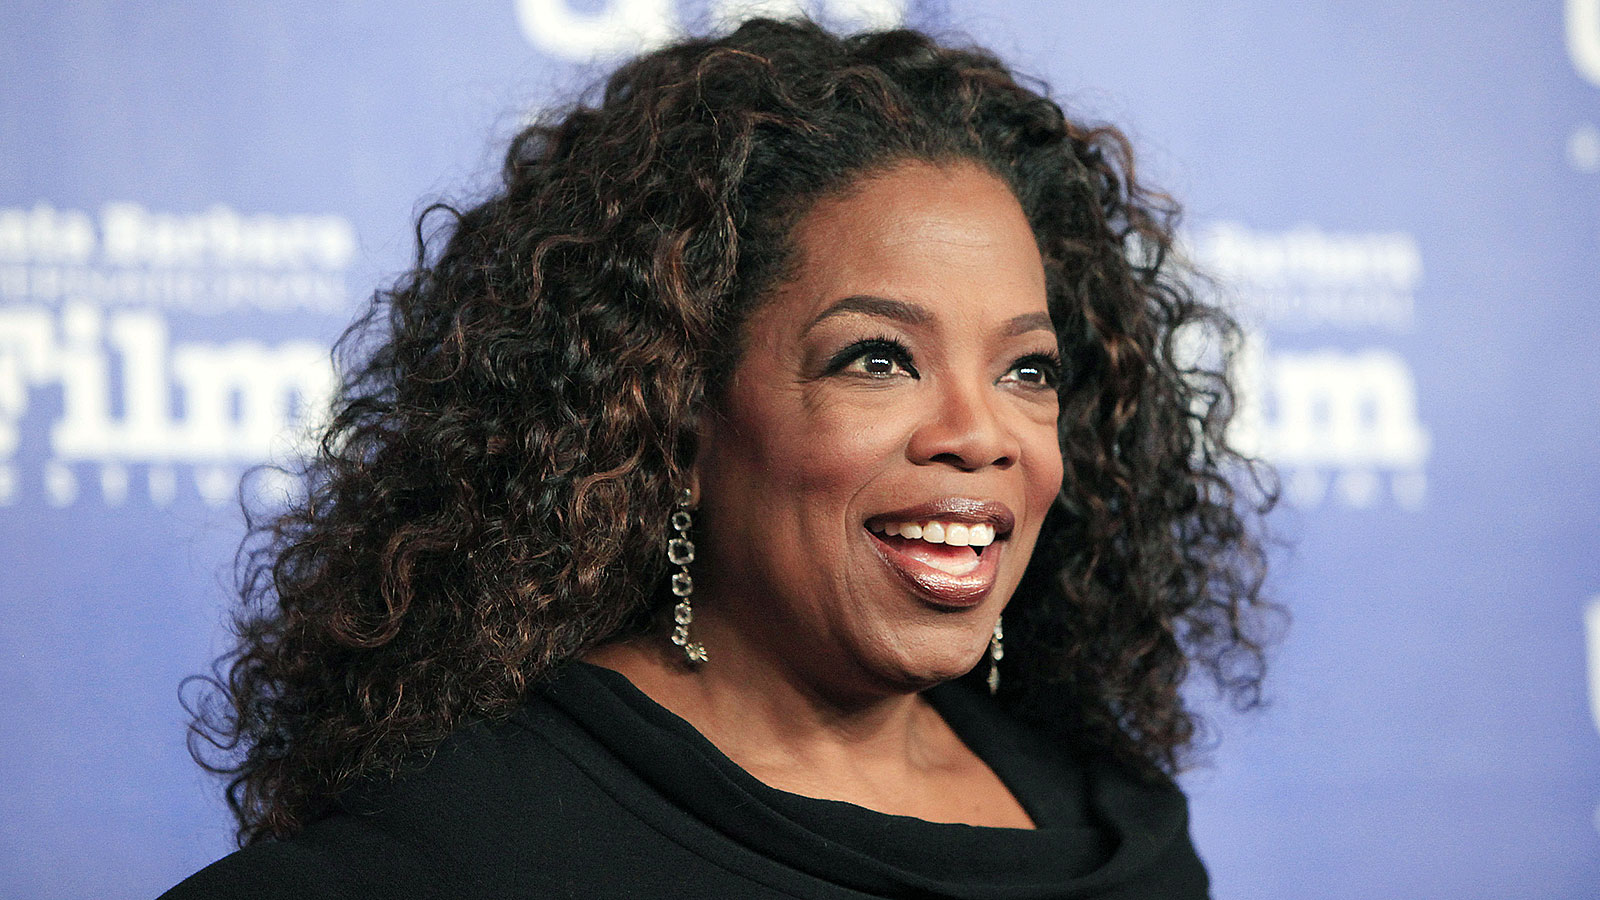 Oprah Winfrey's latest act of generosity may inspire you to be a giver in work and life